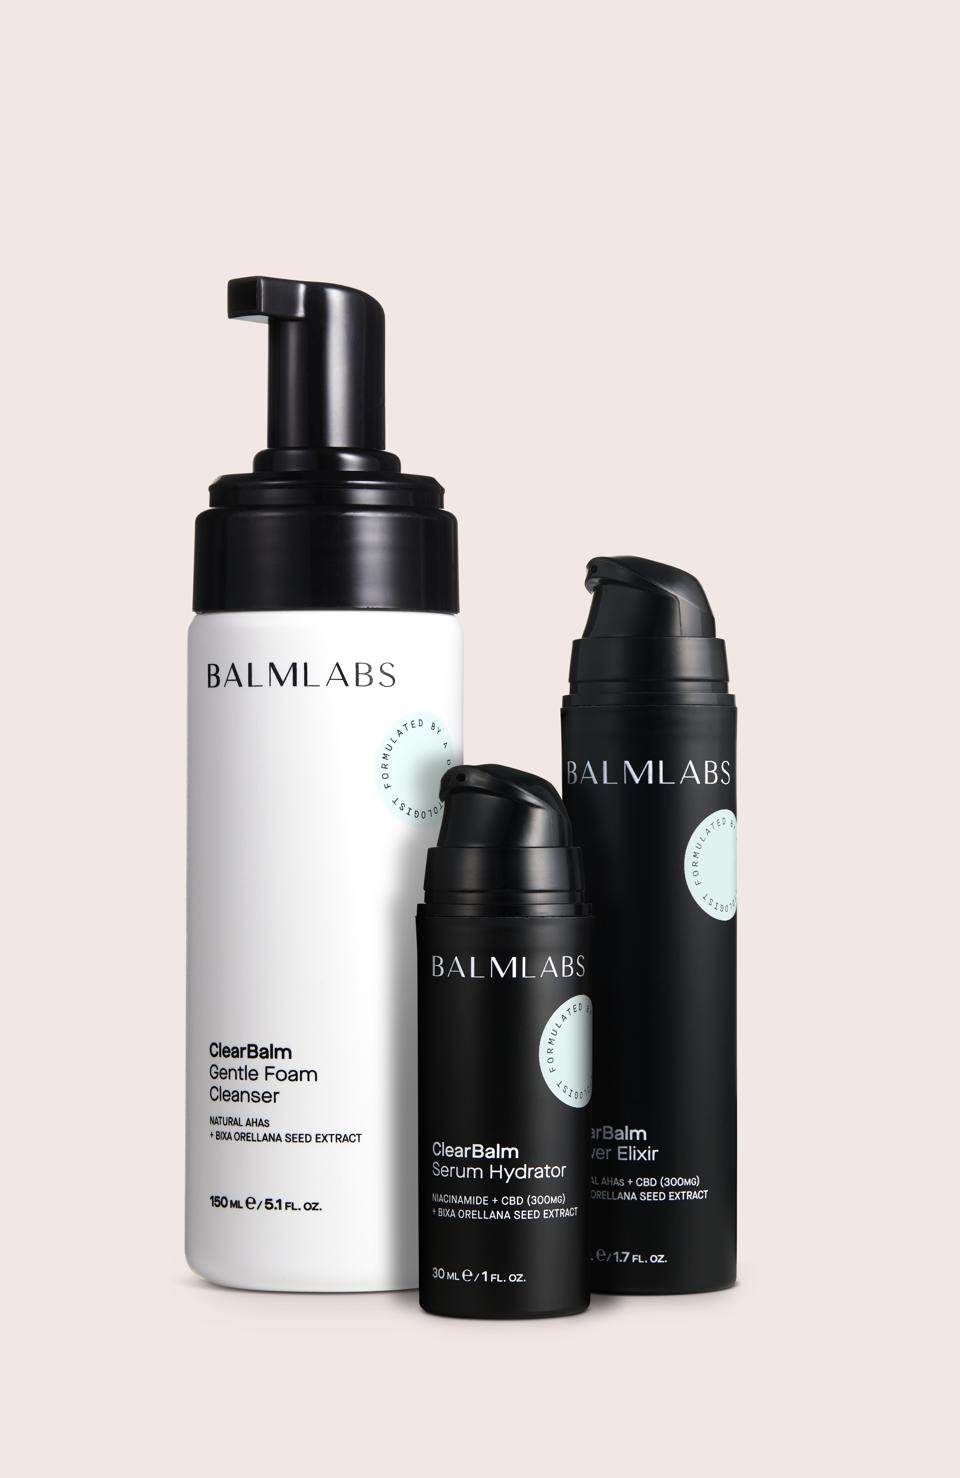 ClearBalm is a ground-breaking 3-step system that cleanses, smooths, revitalizes and improves the look of adult, acne-prone skin without the use of harsh ingredients. Includes Gentle Foam Cleanser, Power Elixir and Serum Hydrator.